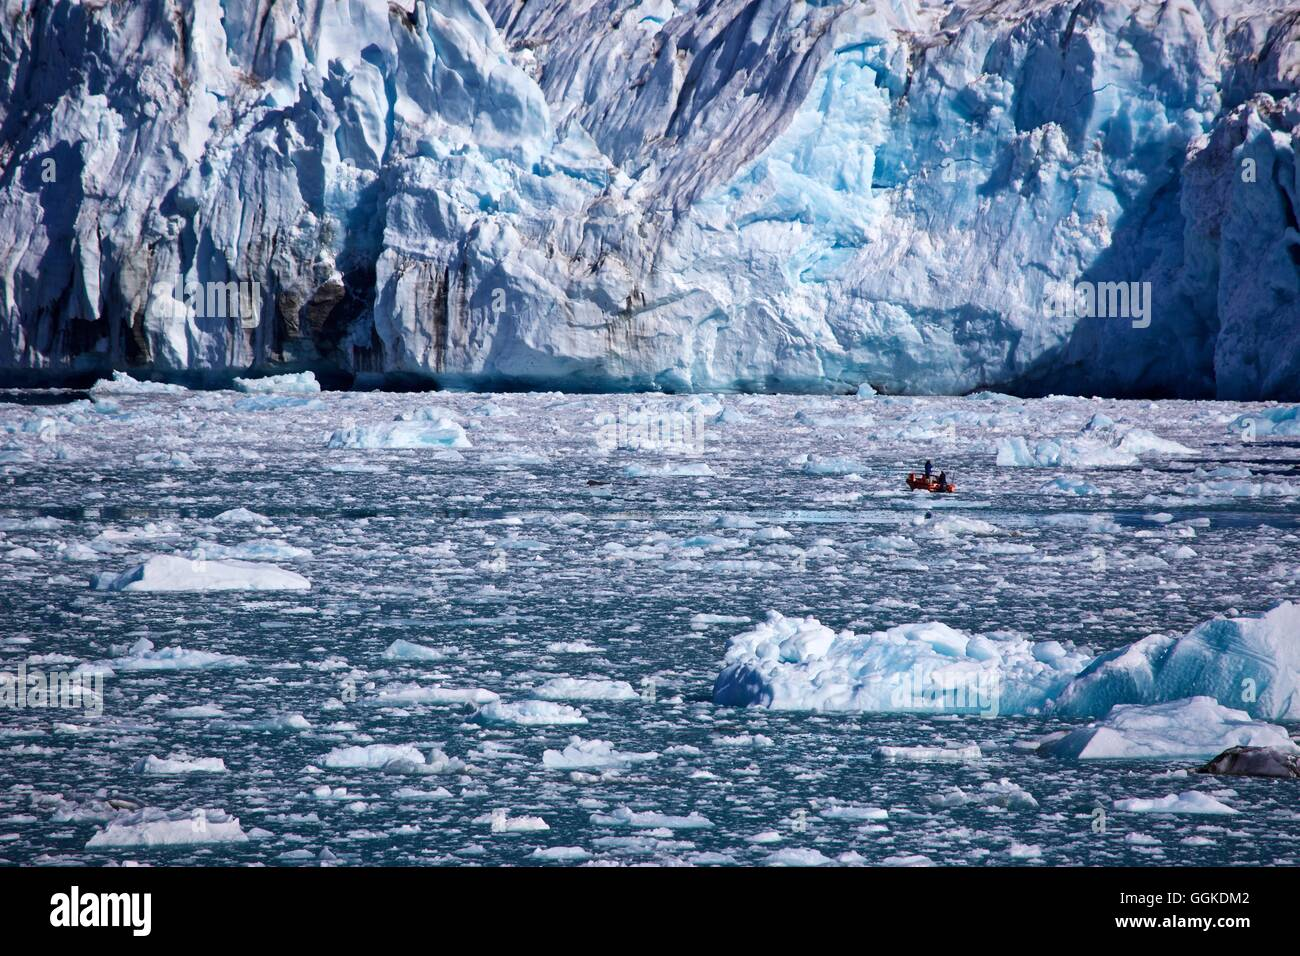 small boat in front of the icefall from the Knud Rasmussen Glacier, East Greenland, Greenland - Stock Image